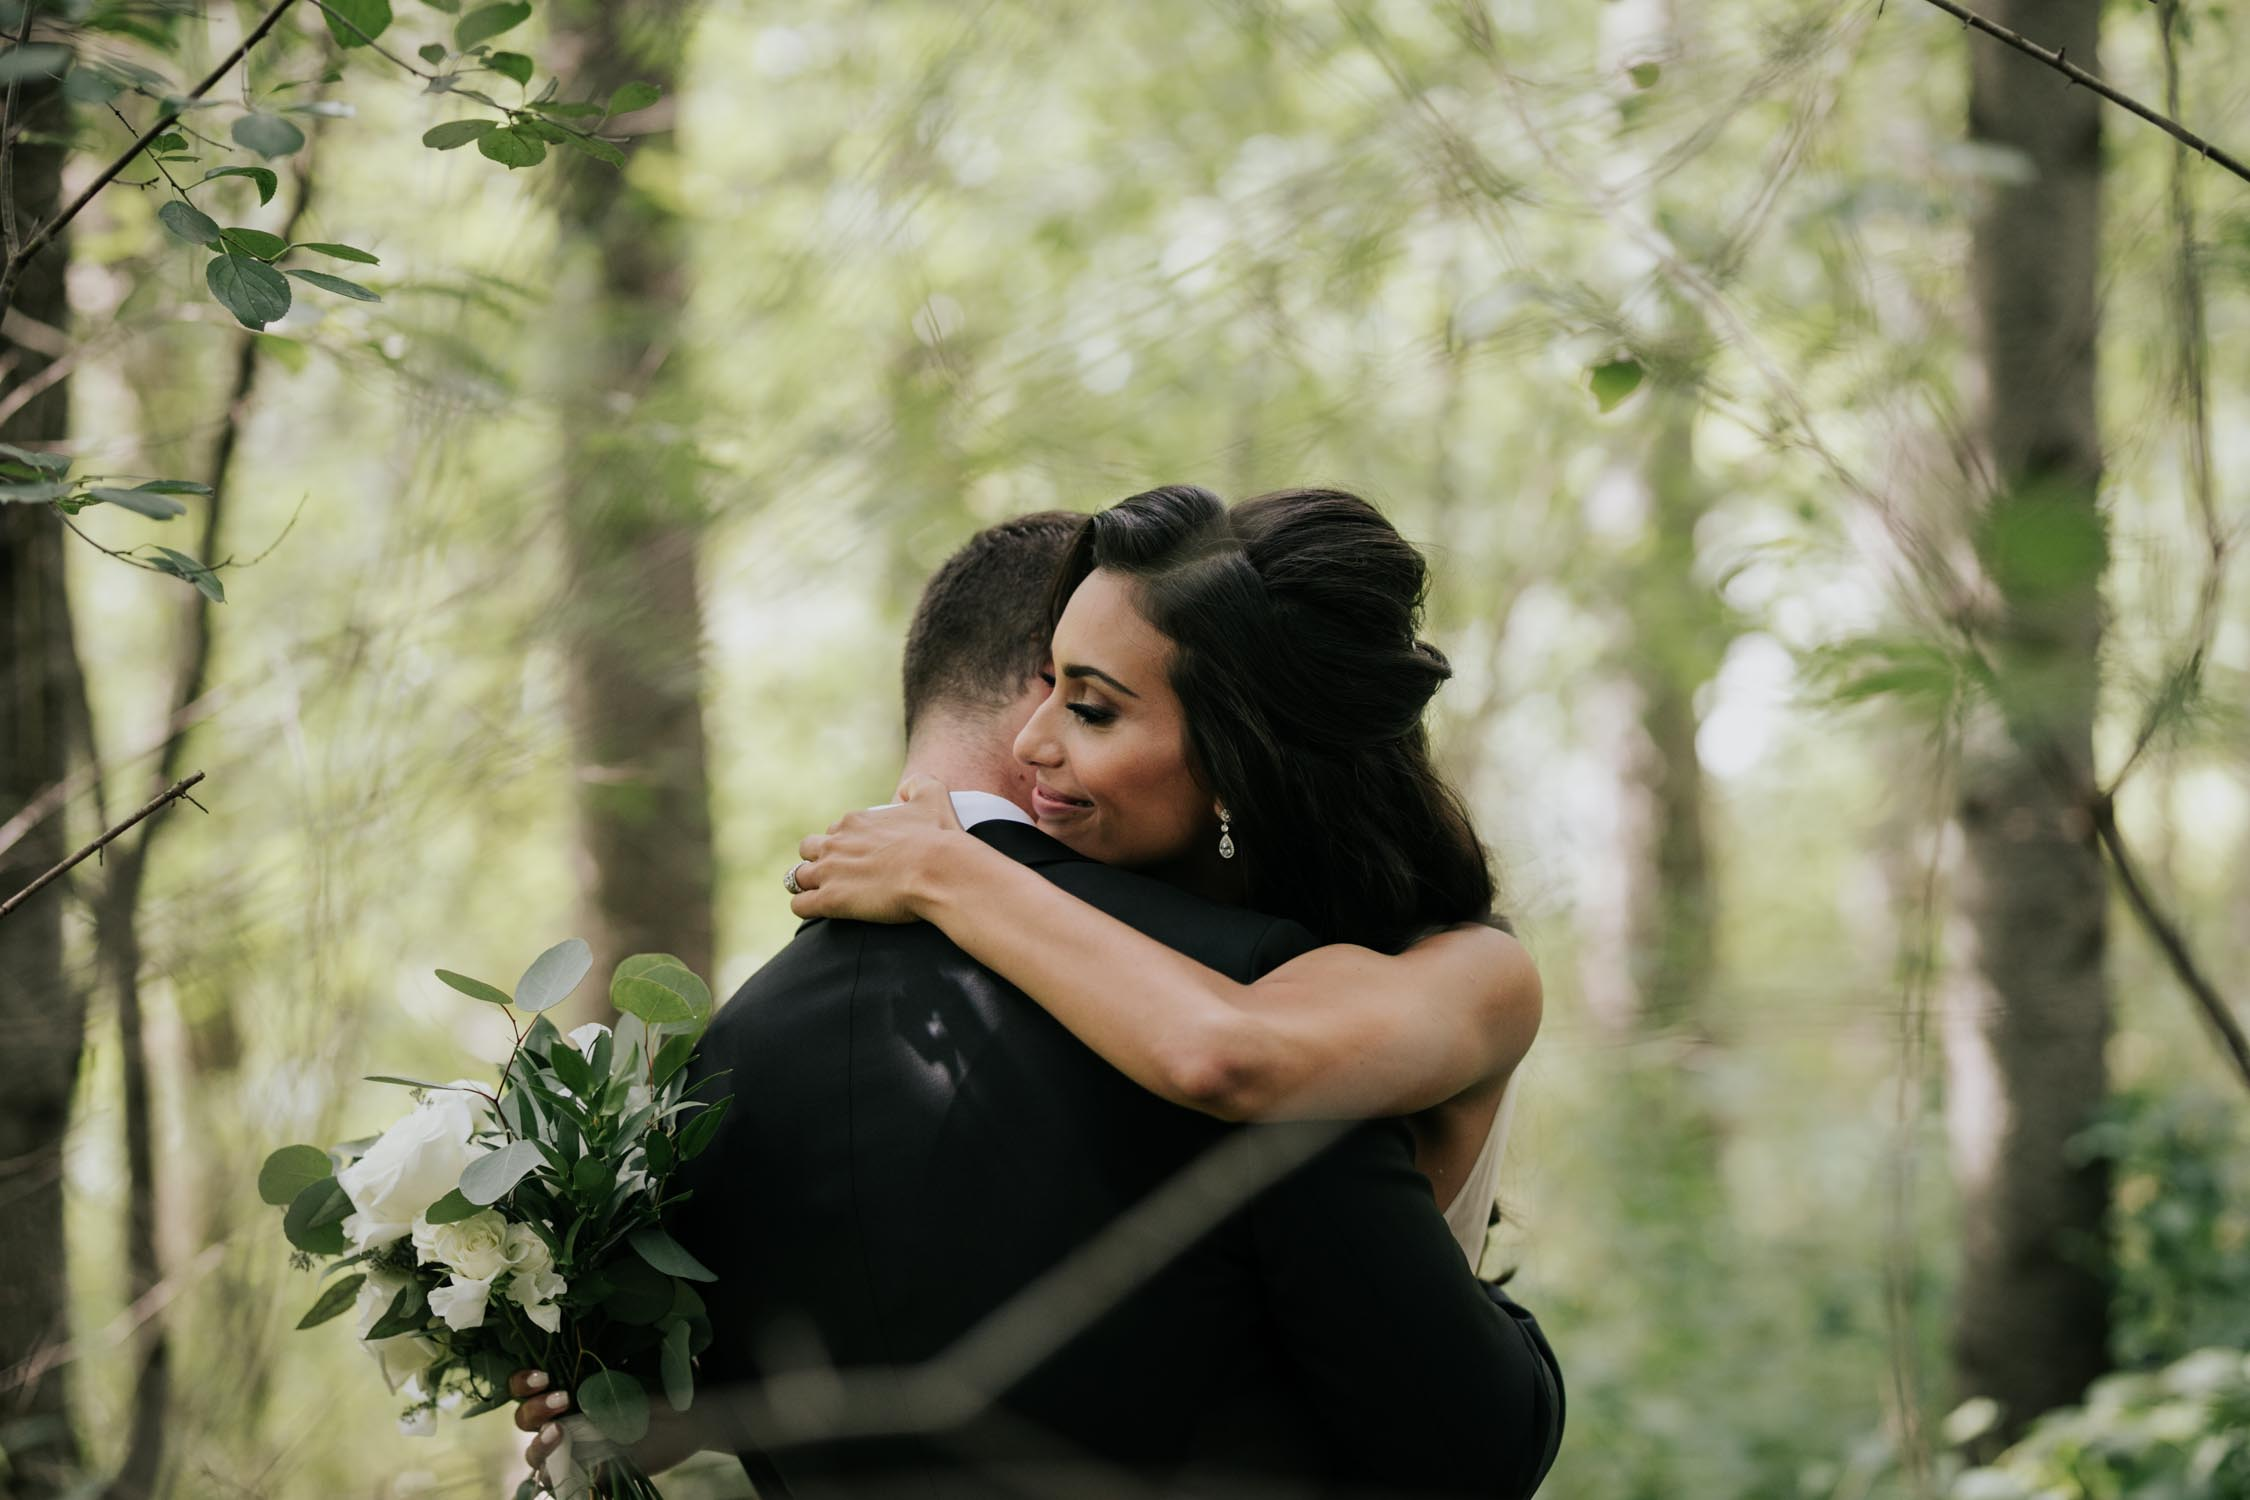 Bride hugging groom at their first look reveal in the forest at Fairy Lake Park in Newmarket before their wedding at Madsen's Greenhouse